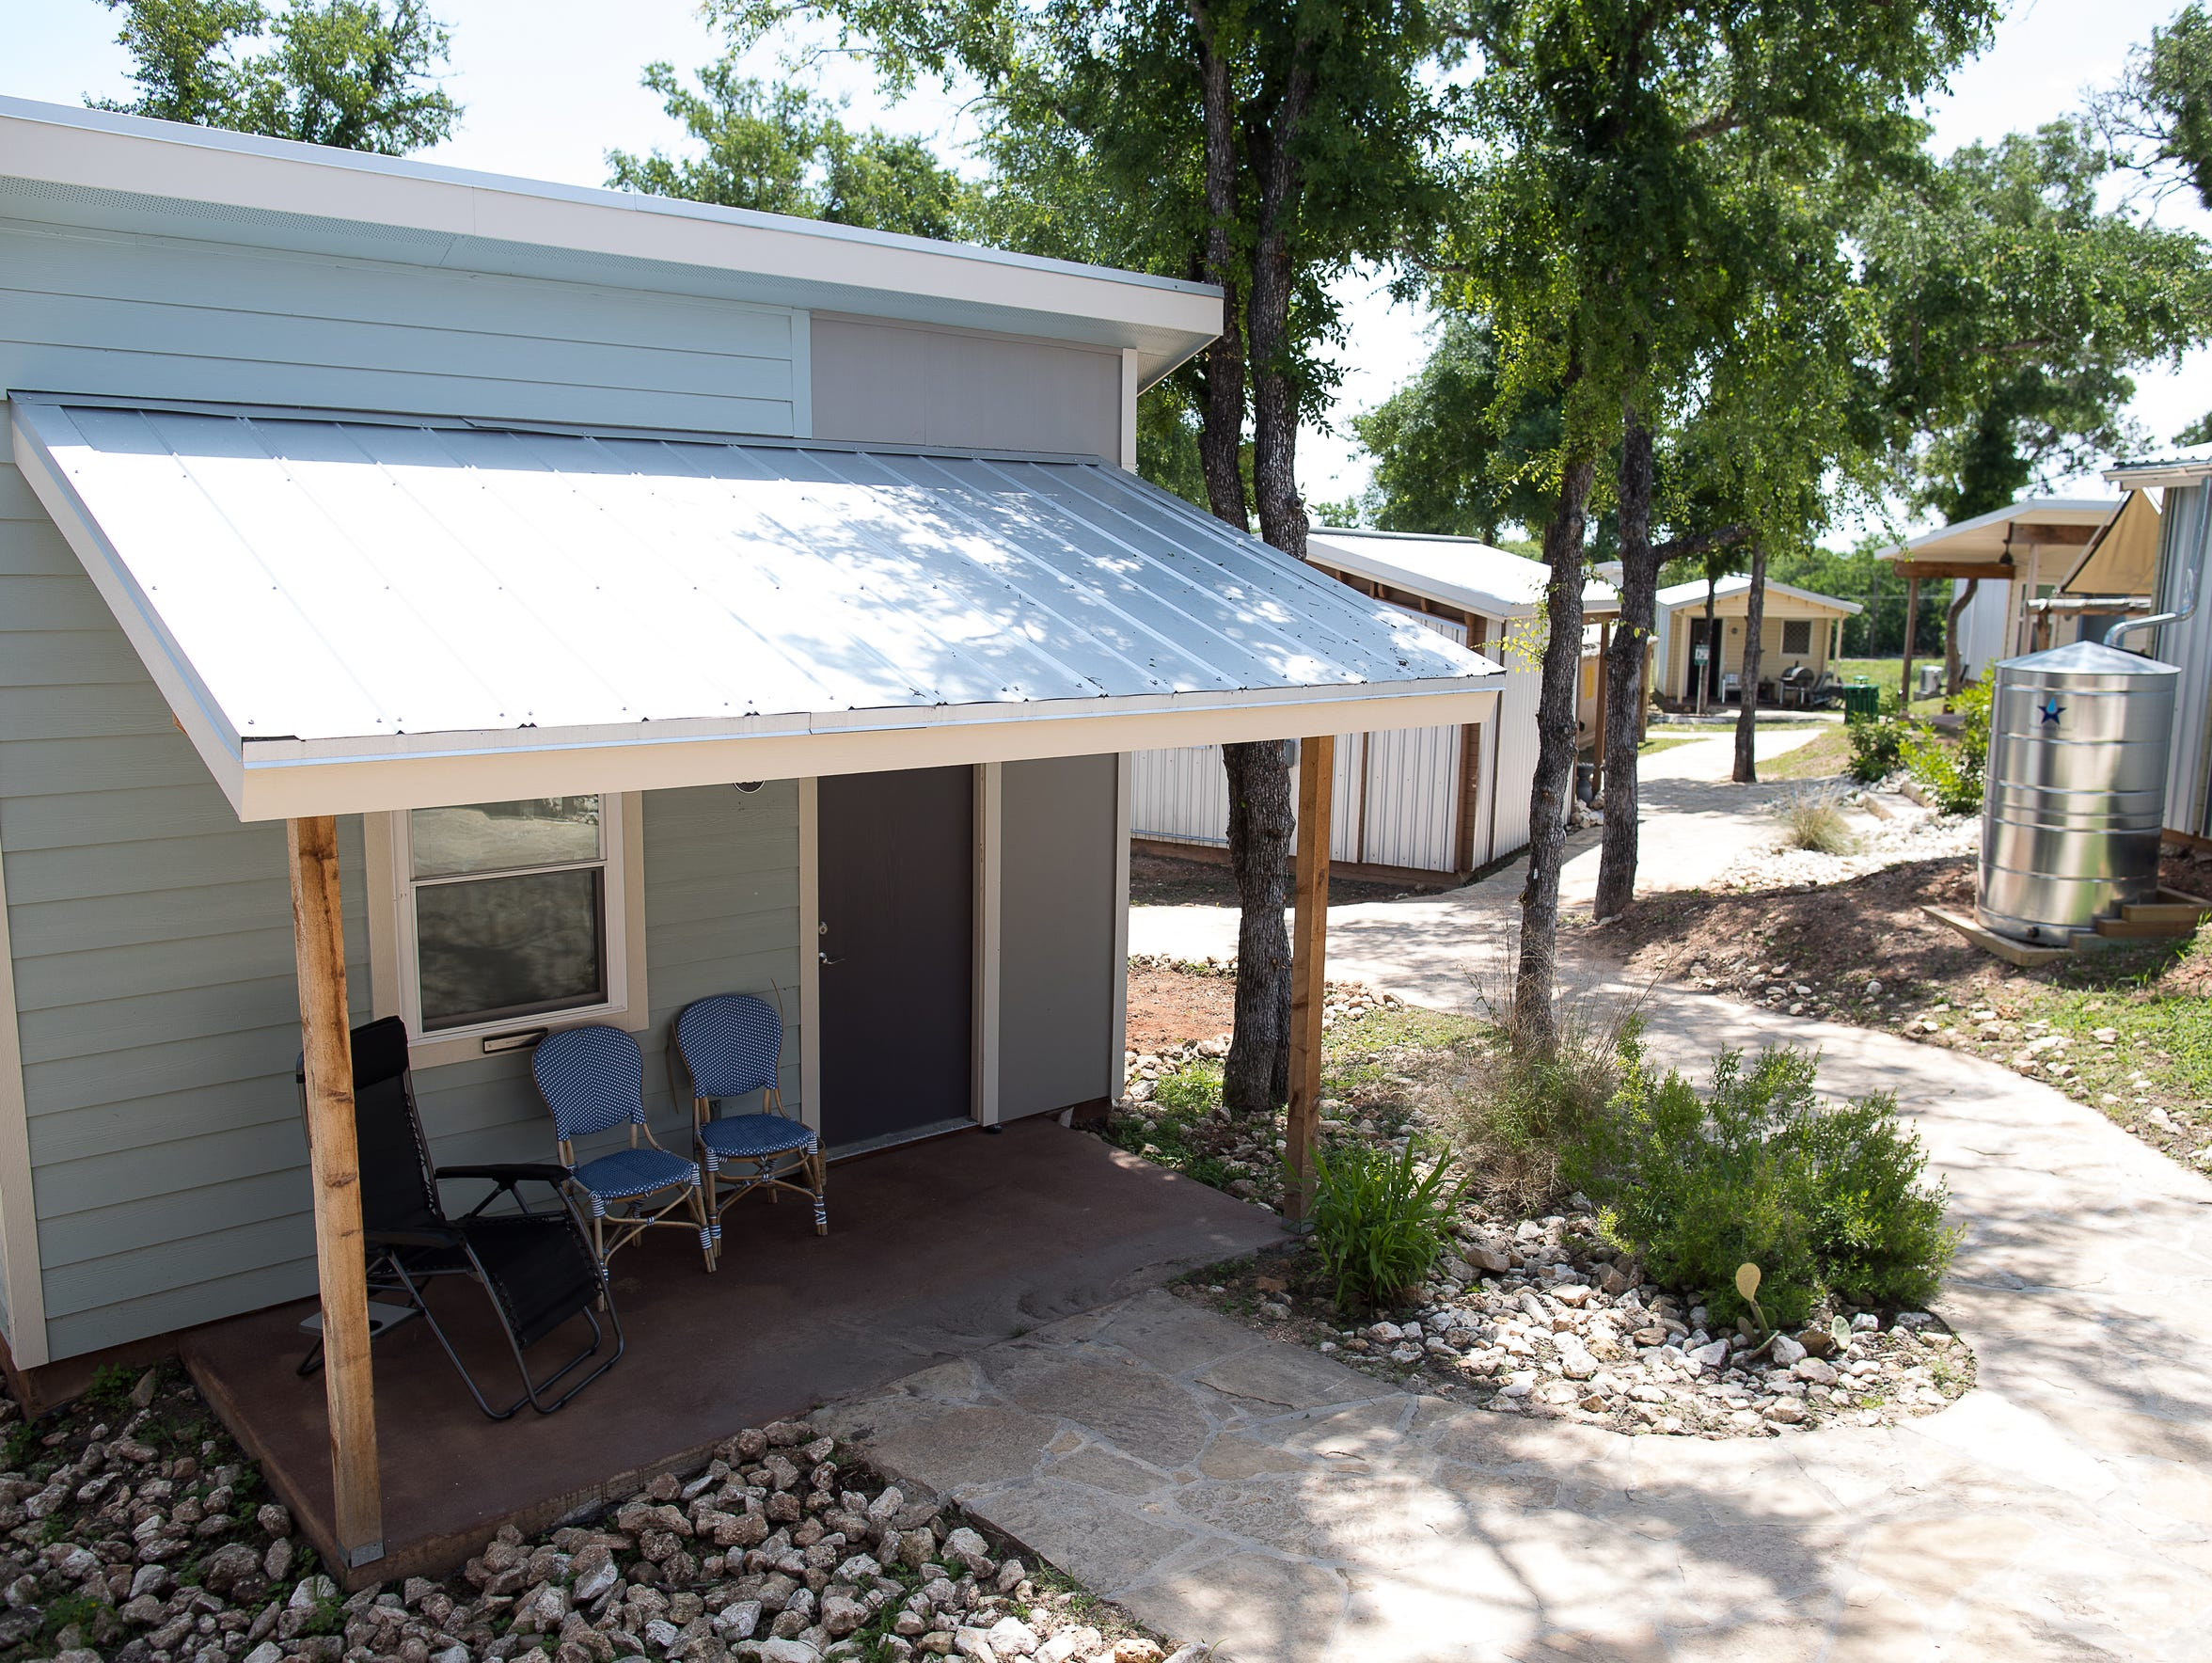 Tiny homes for the chronically homeless in the Community